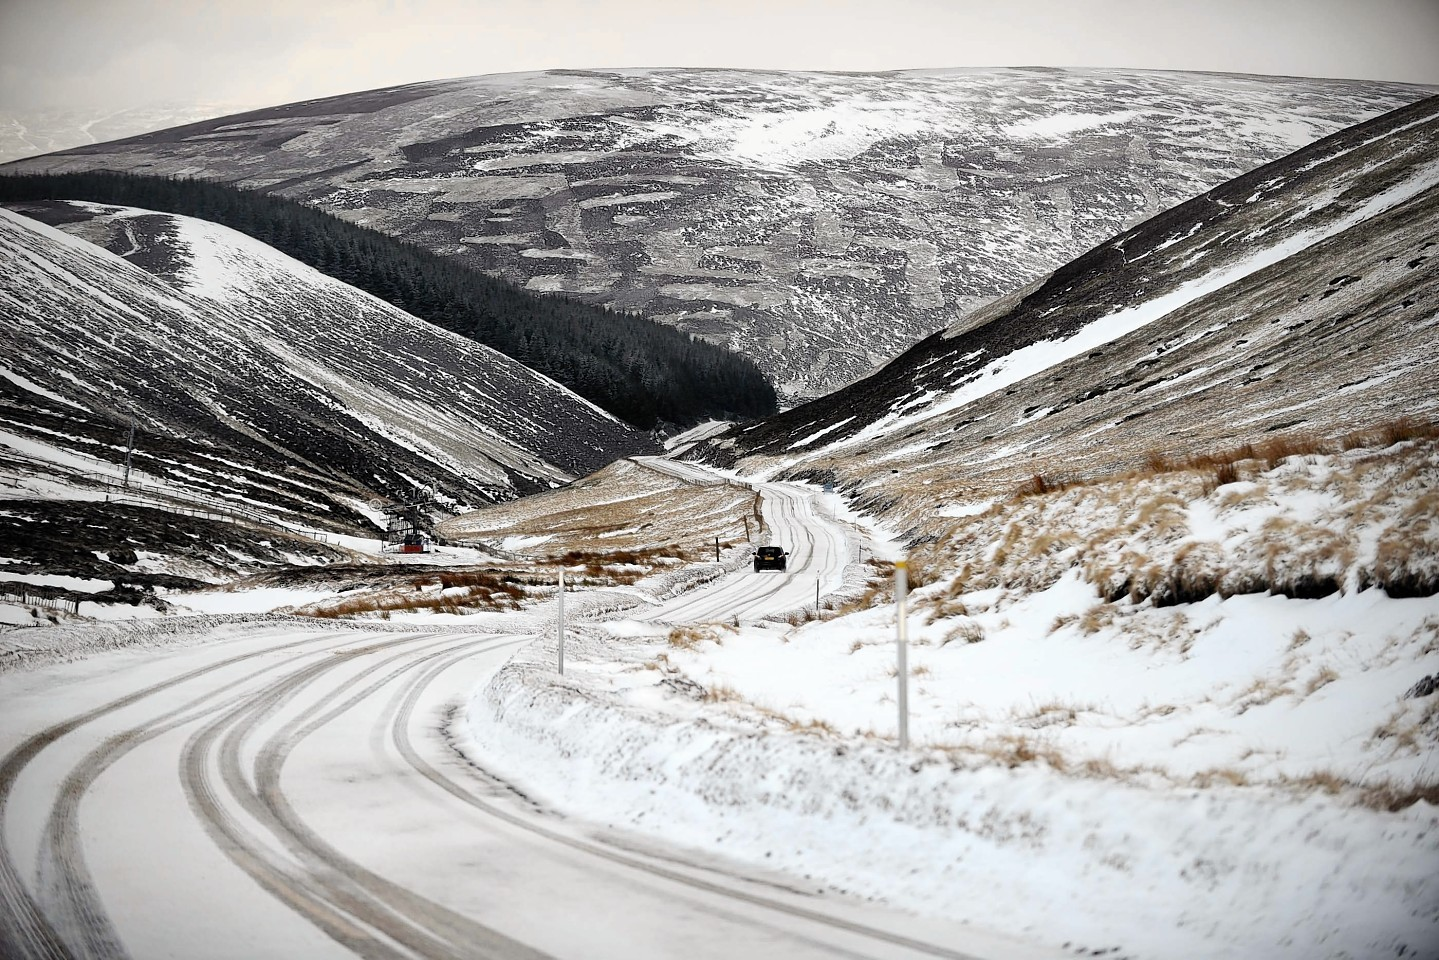 Snow in Aberdeenshire from last year